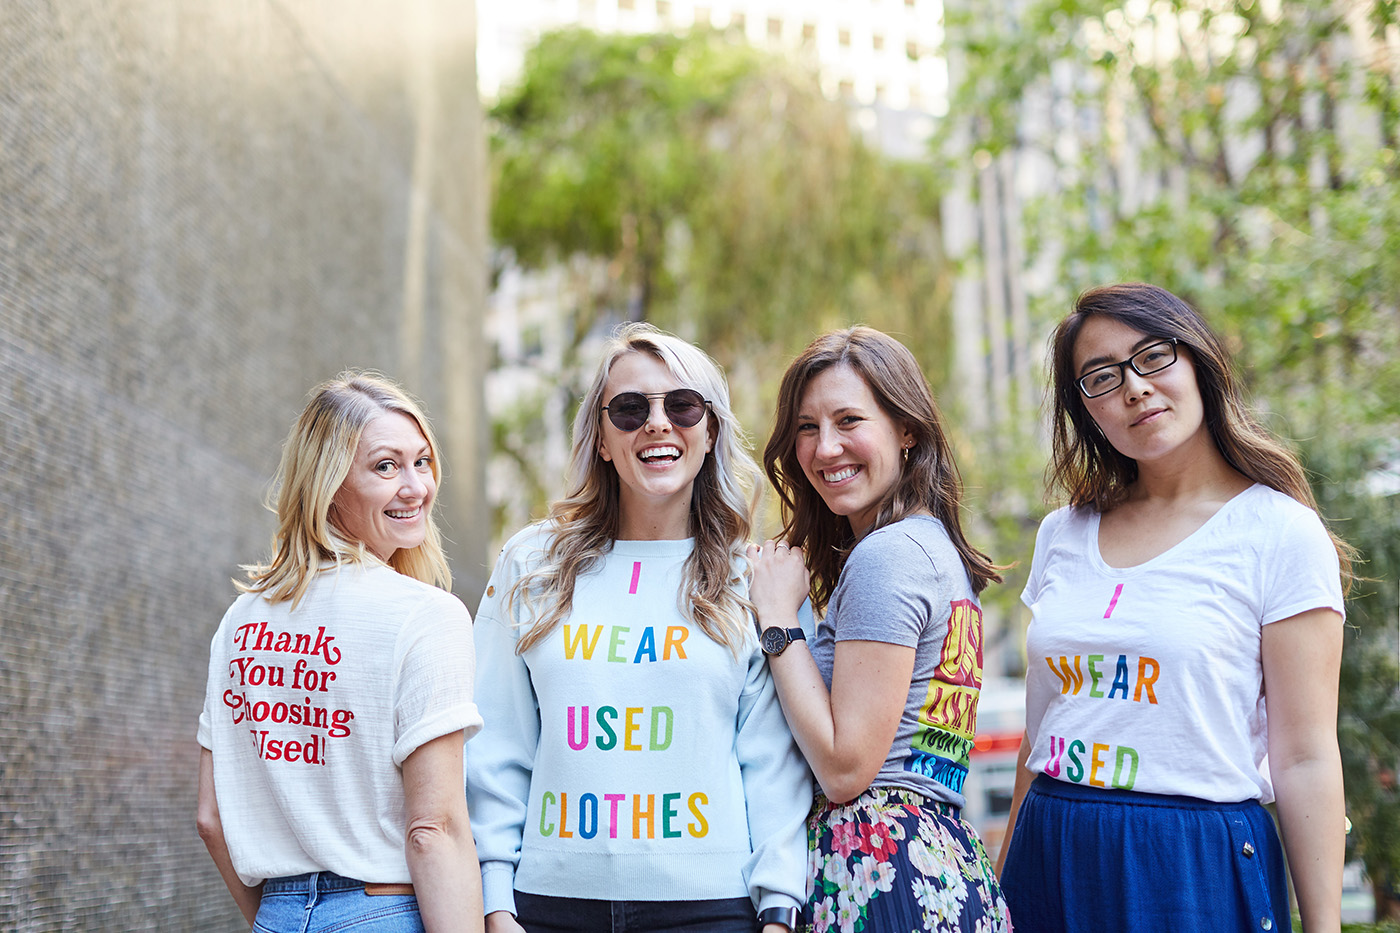 Learn more about #ChooseUsed and these cute tees  here .